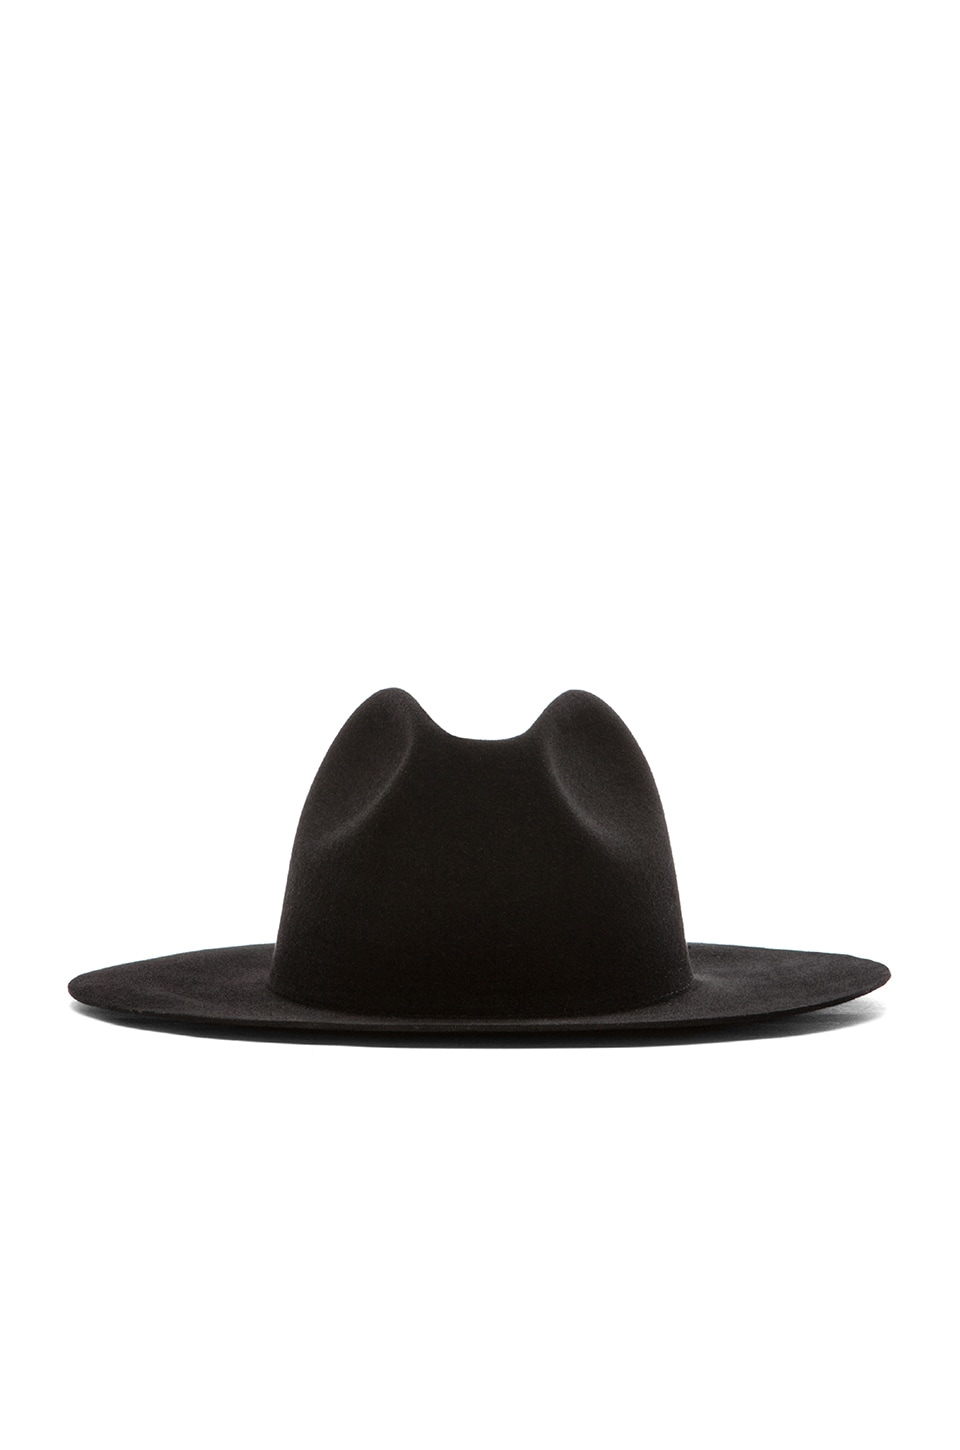 Studio Midnight Hat by Etudes